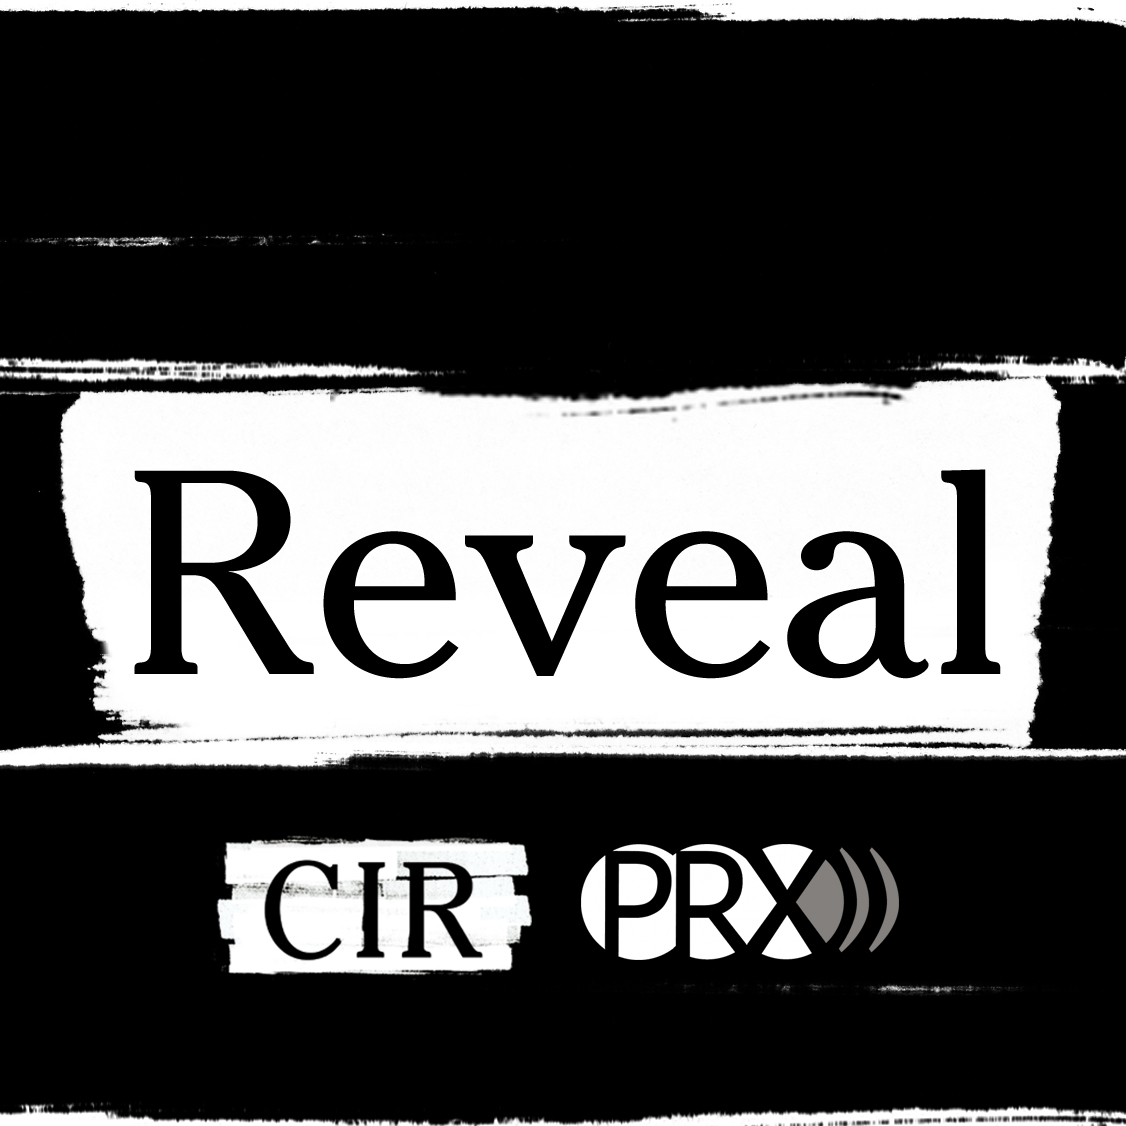 Reveal-square-logo-black_prx_medium_medium_small